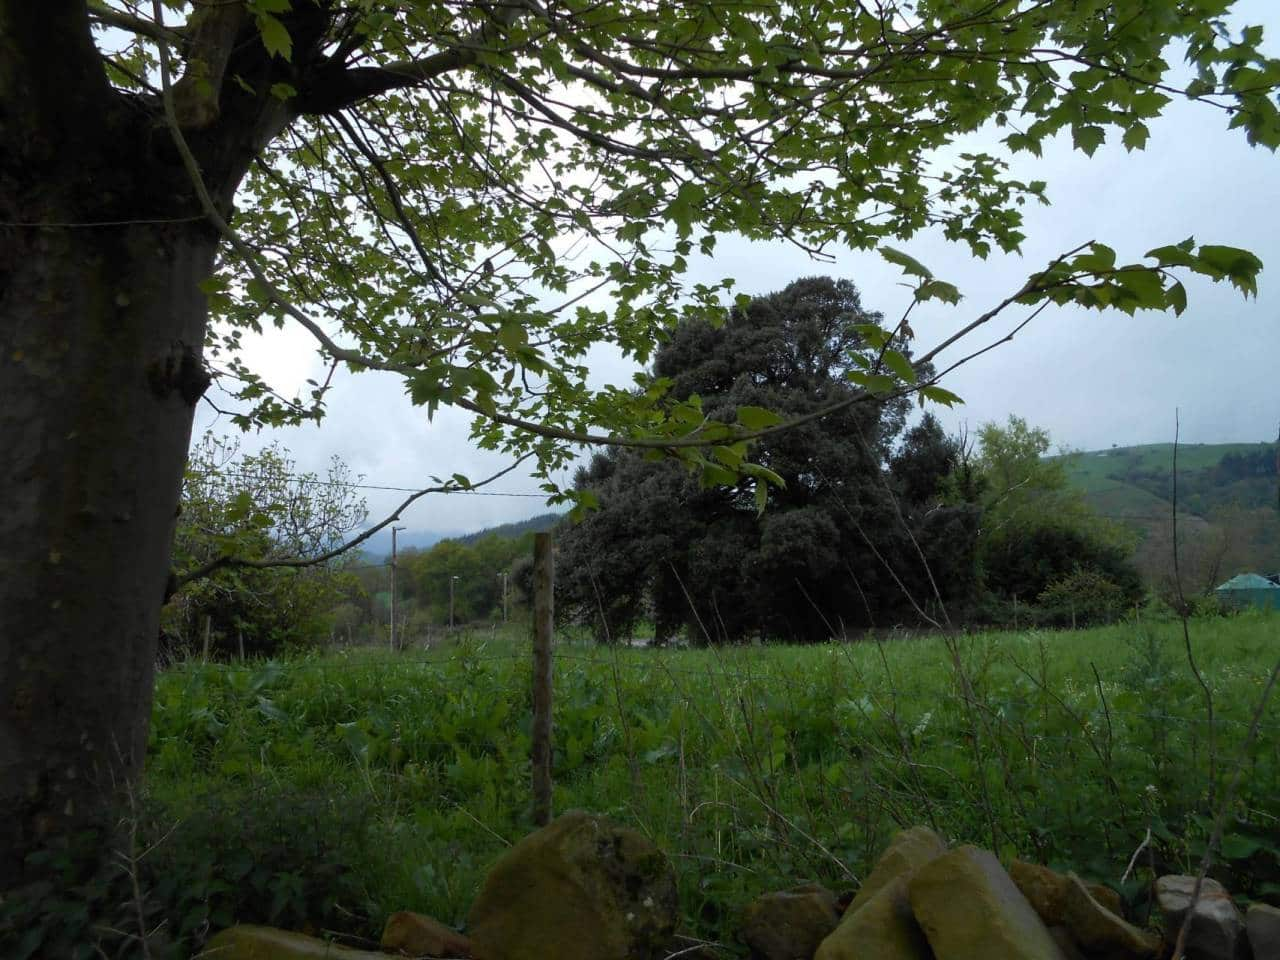 Undeveloped Land for sale in Carranza - € 85,000 (Ref: 942837)